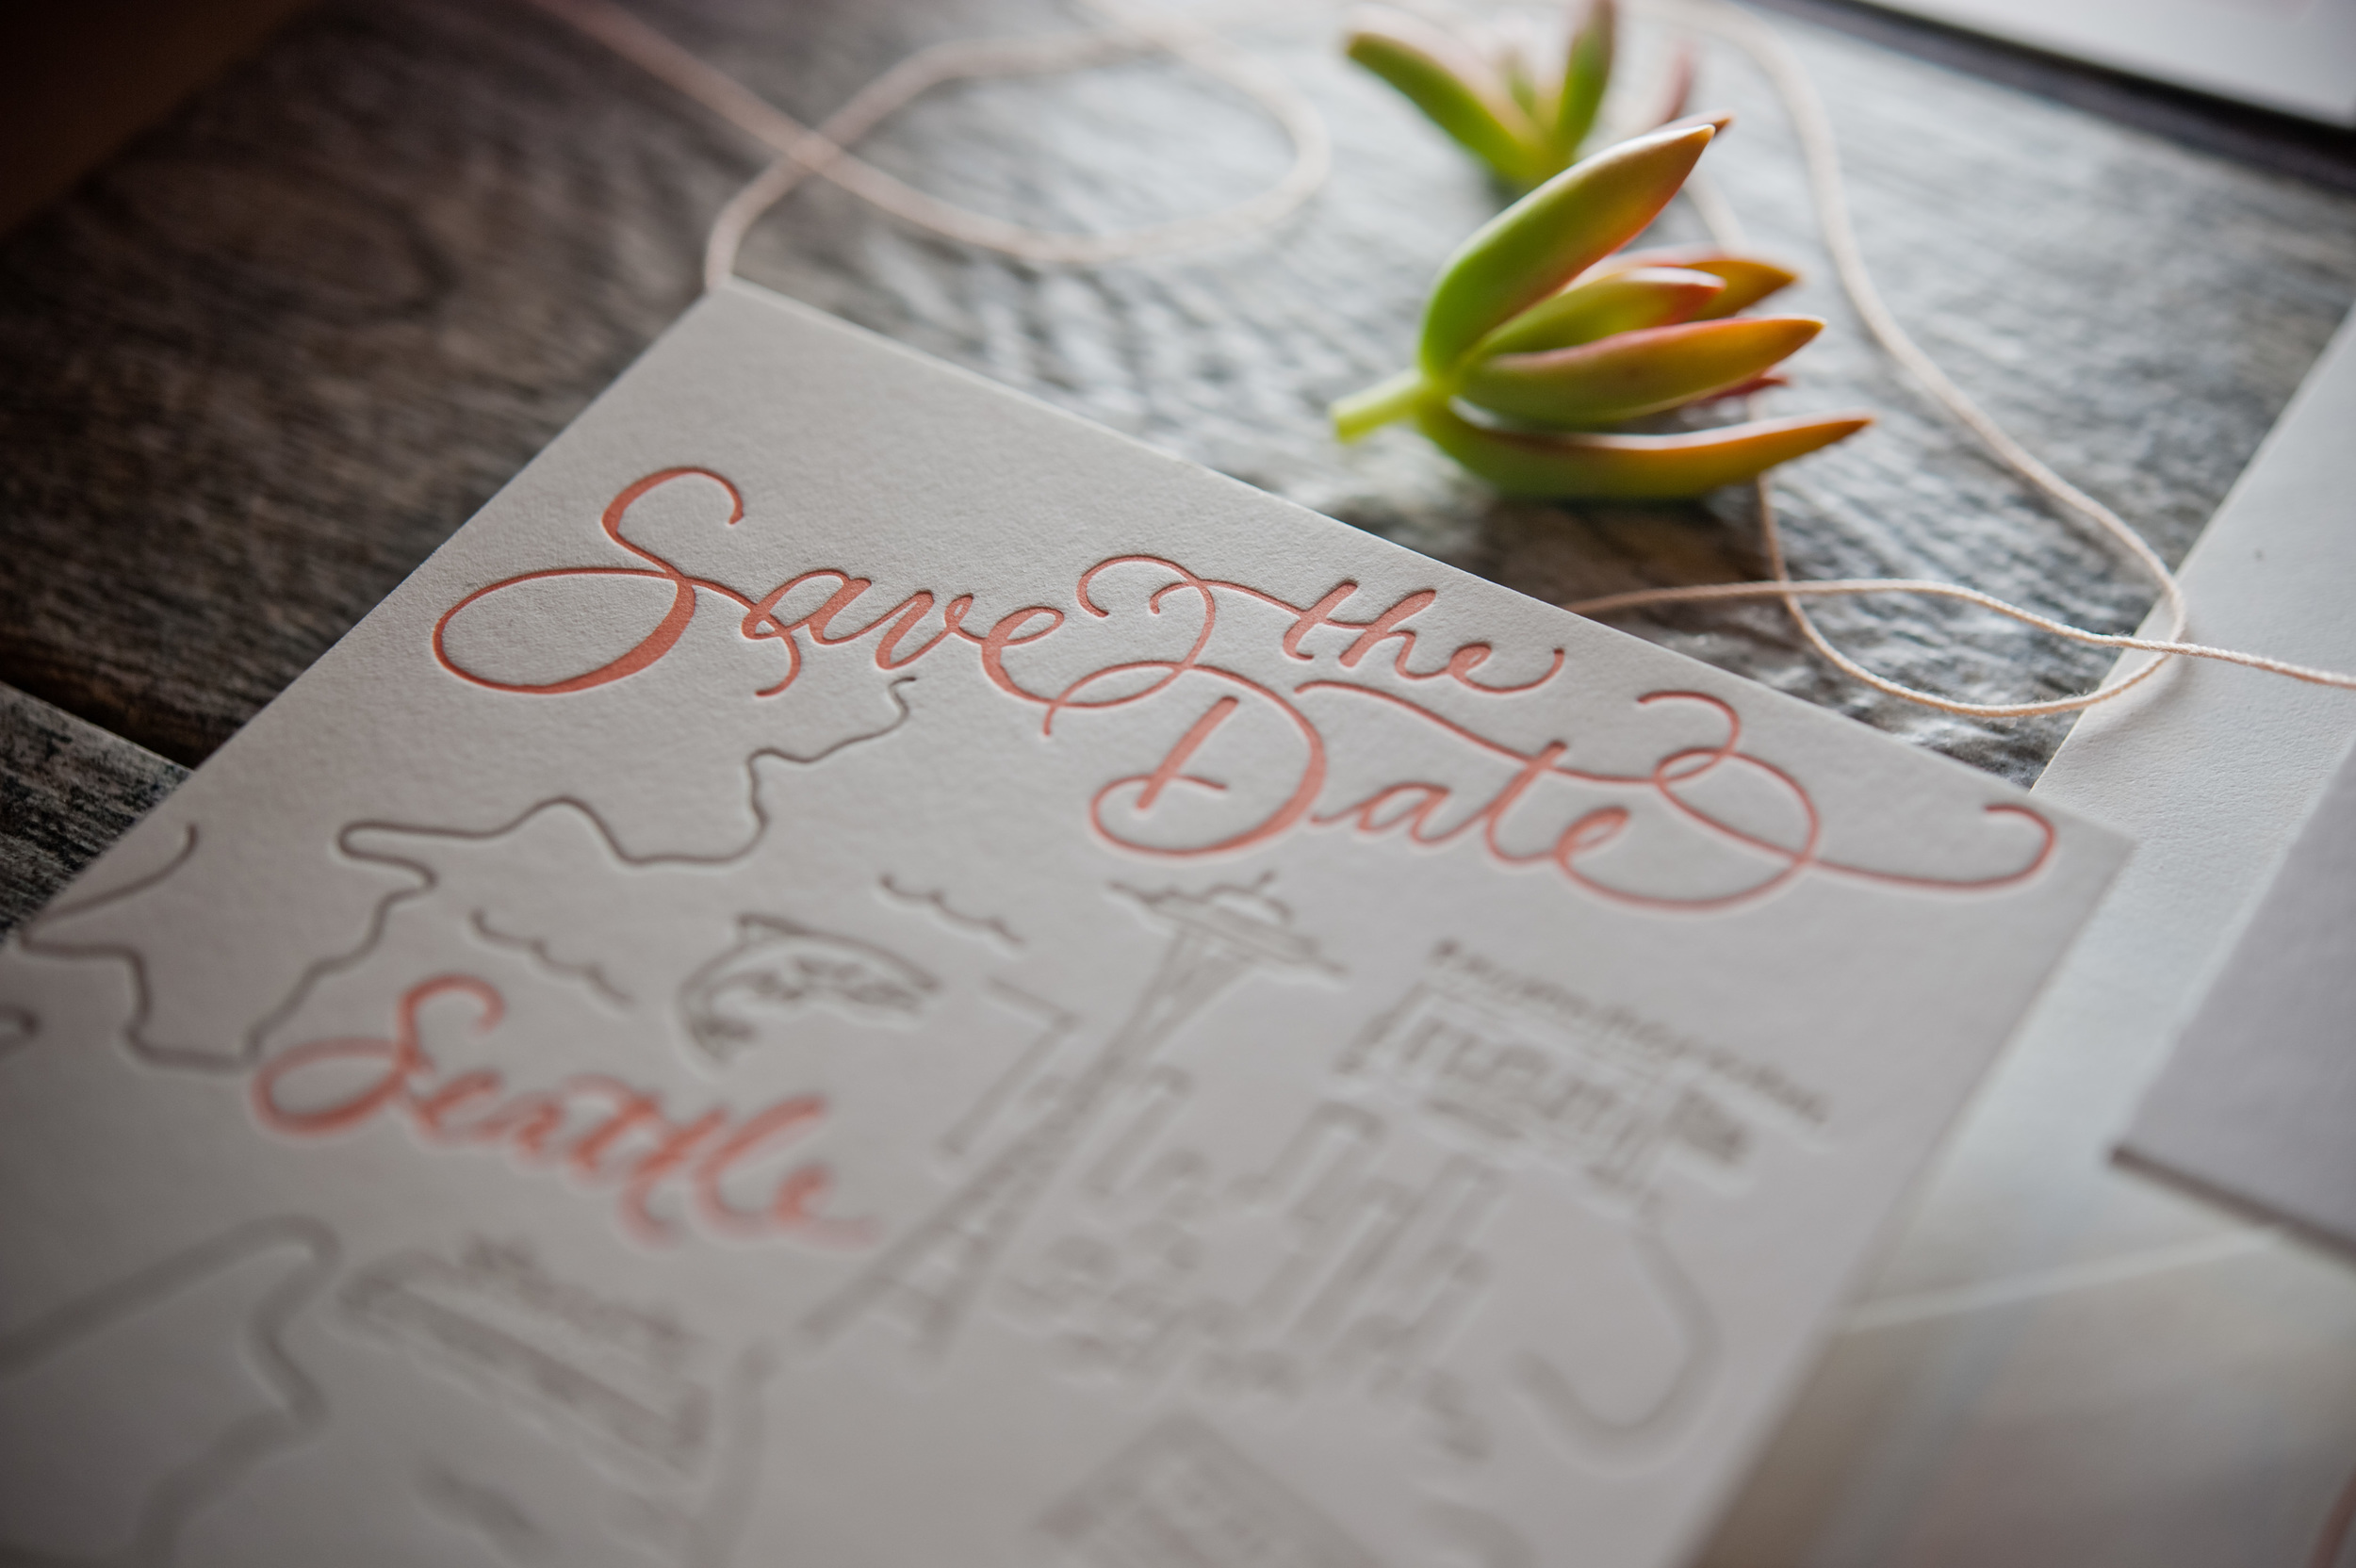 copperwillow.com   Modern Wedding Invitation Collection   Grey and Orange Wedding Stationery   Copper Willow Paper Studio